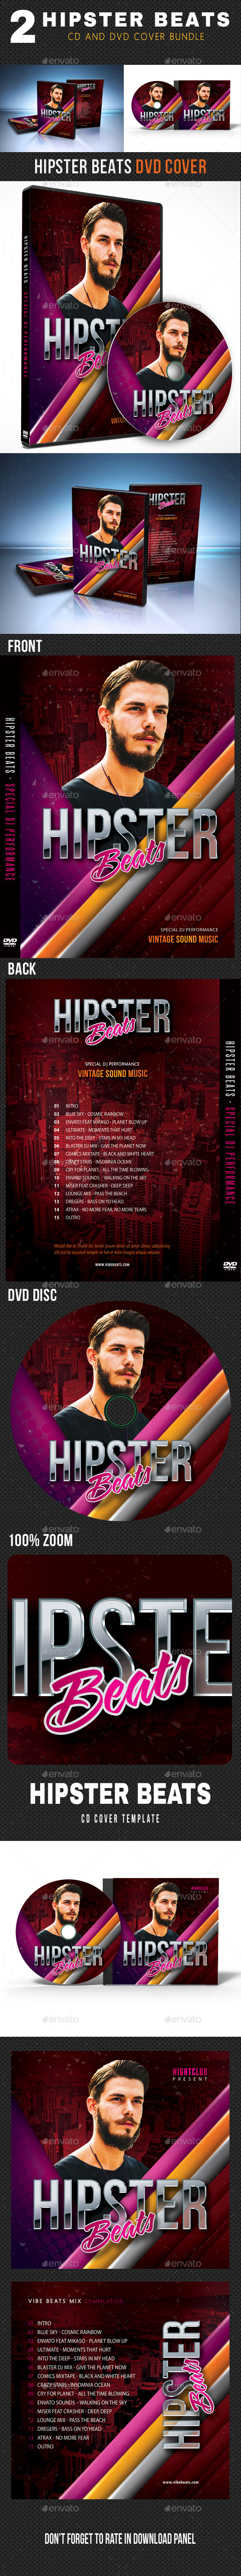 2 in 1 Hipster Beats Music CD - DVD Cover Bundle - CD & DVD Artwork Print Templates